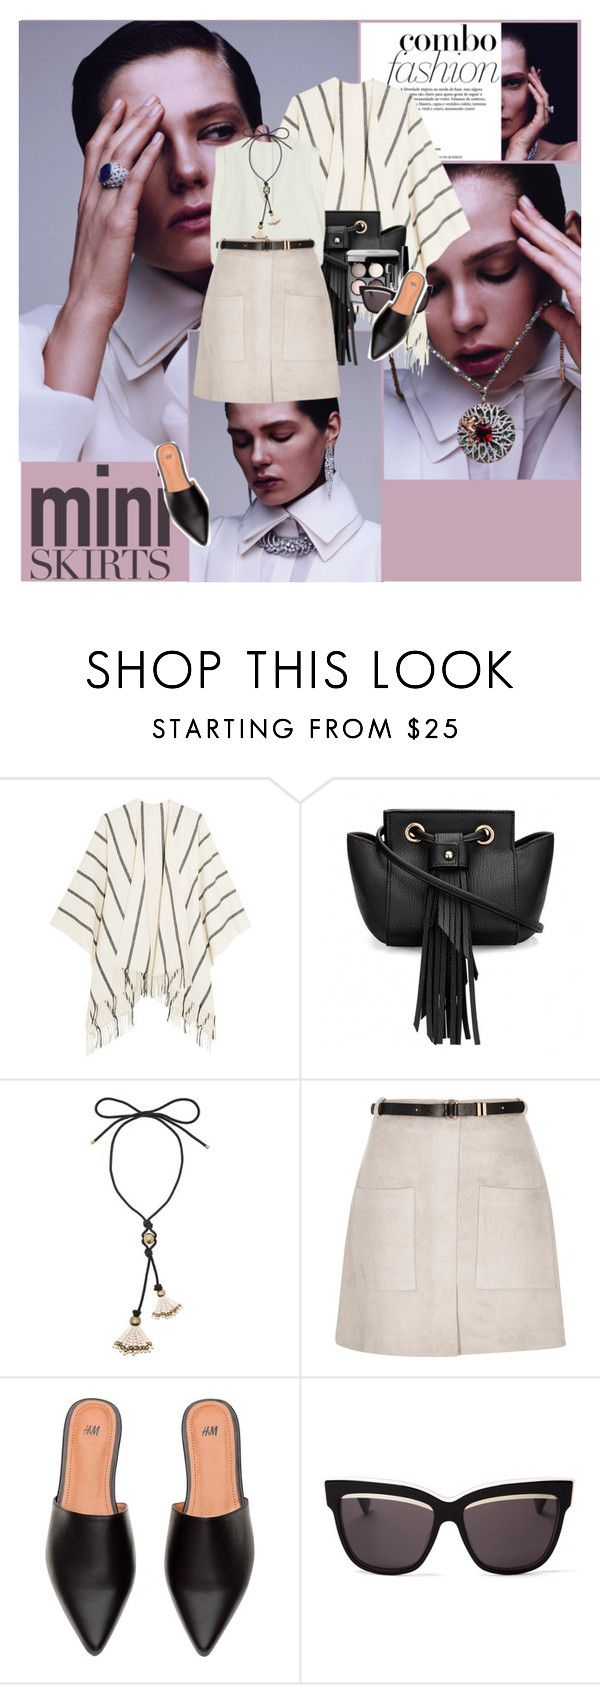 """..."" by margarita-m-a ❤ liked on Polyvore featuring rag & bone, Chanel, Maison Margiela, Lanvin, River Island, Christian Dior and MINISKIRT"